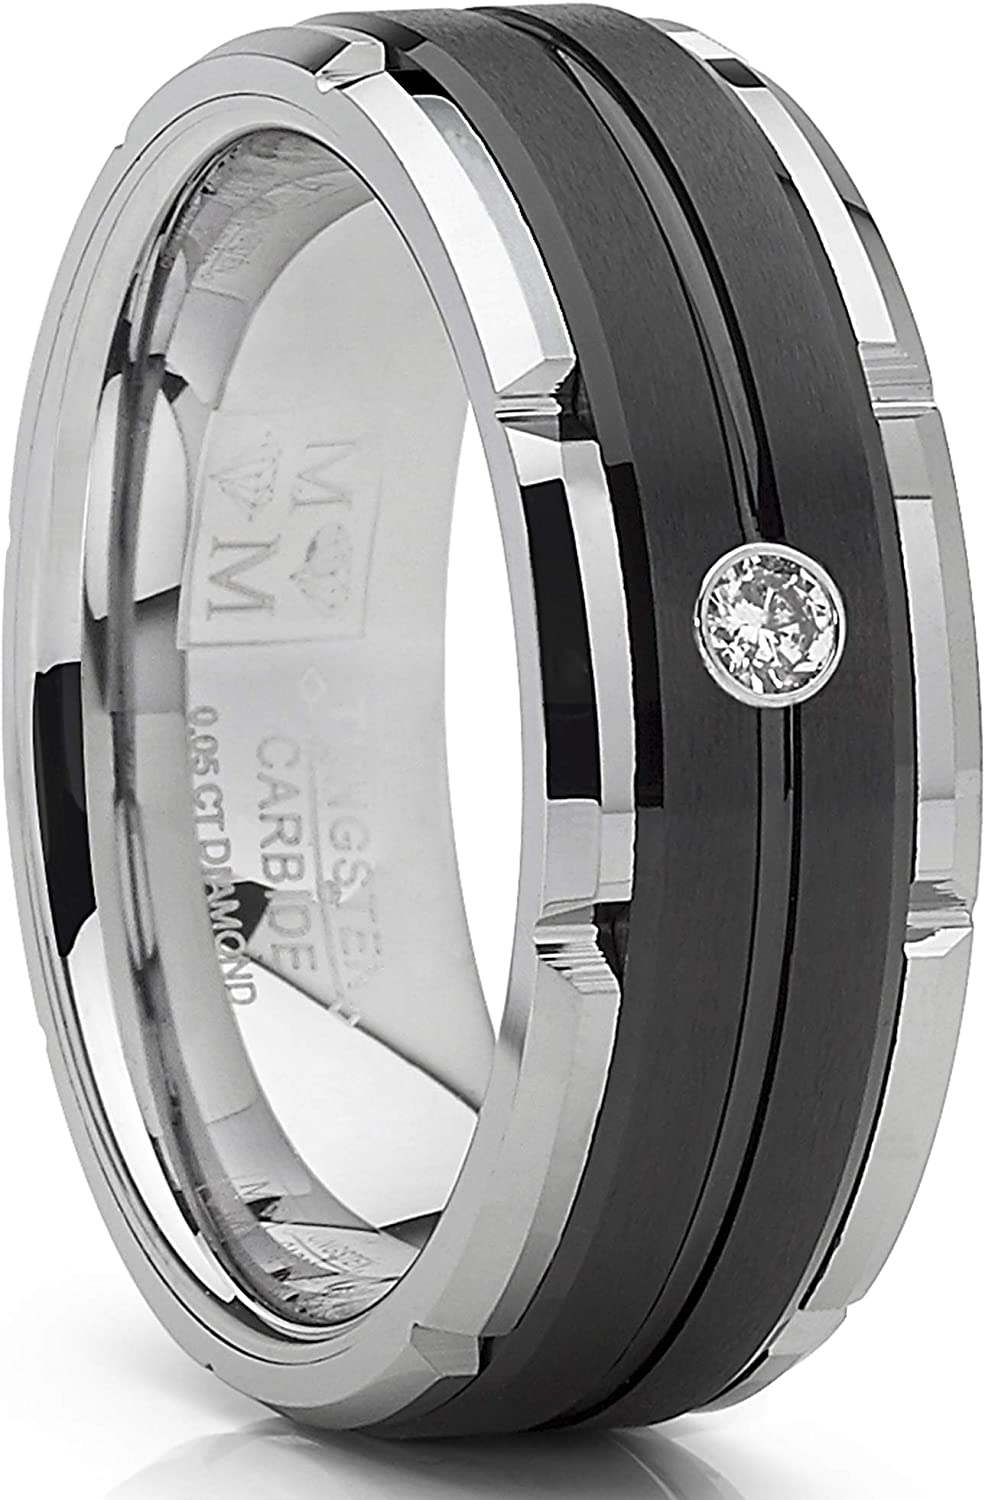 Metal Masters Co. Men's Tungsten Carbide Wedding Band Real Diamond .05 Two Tone Black Ring 8mm